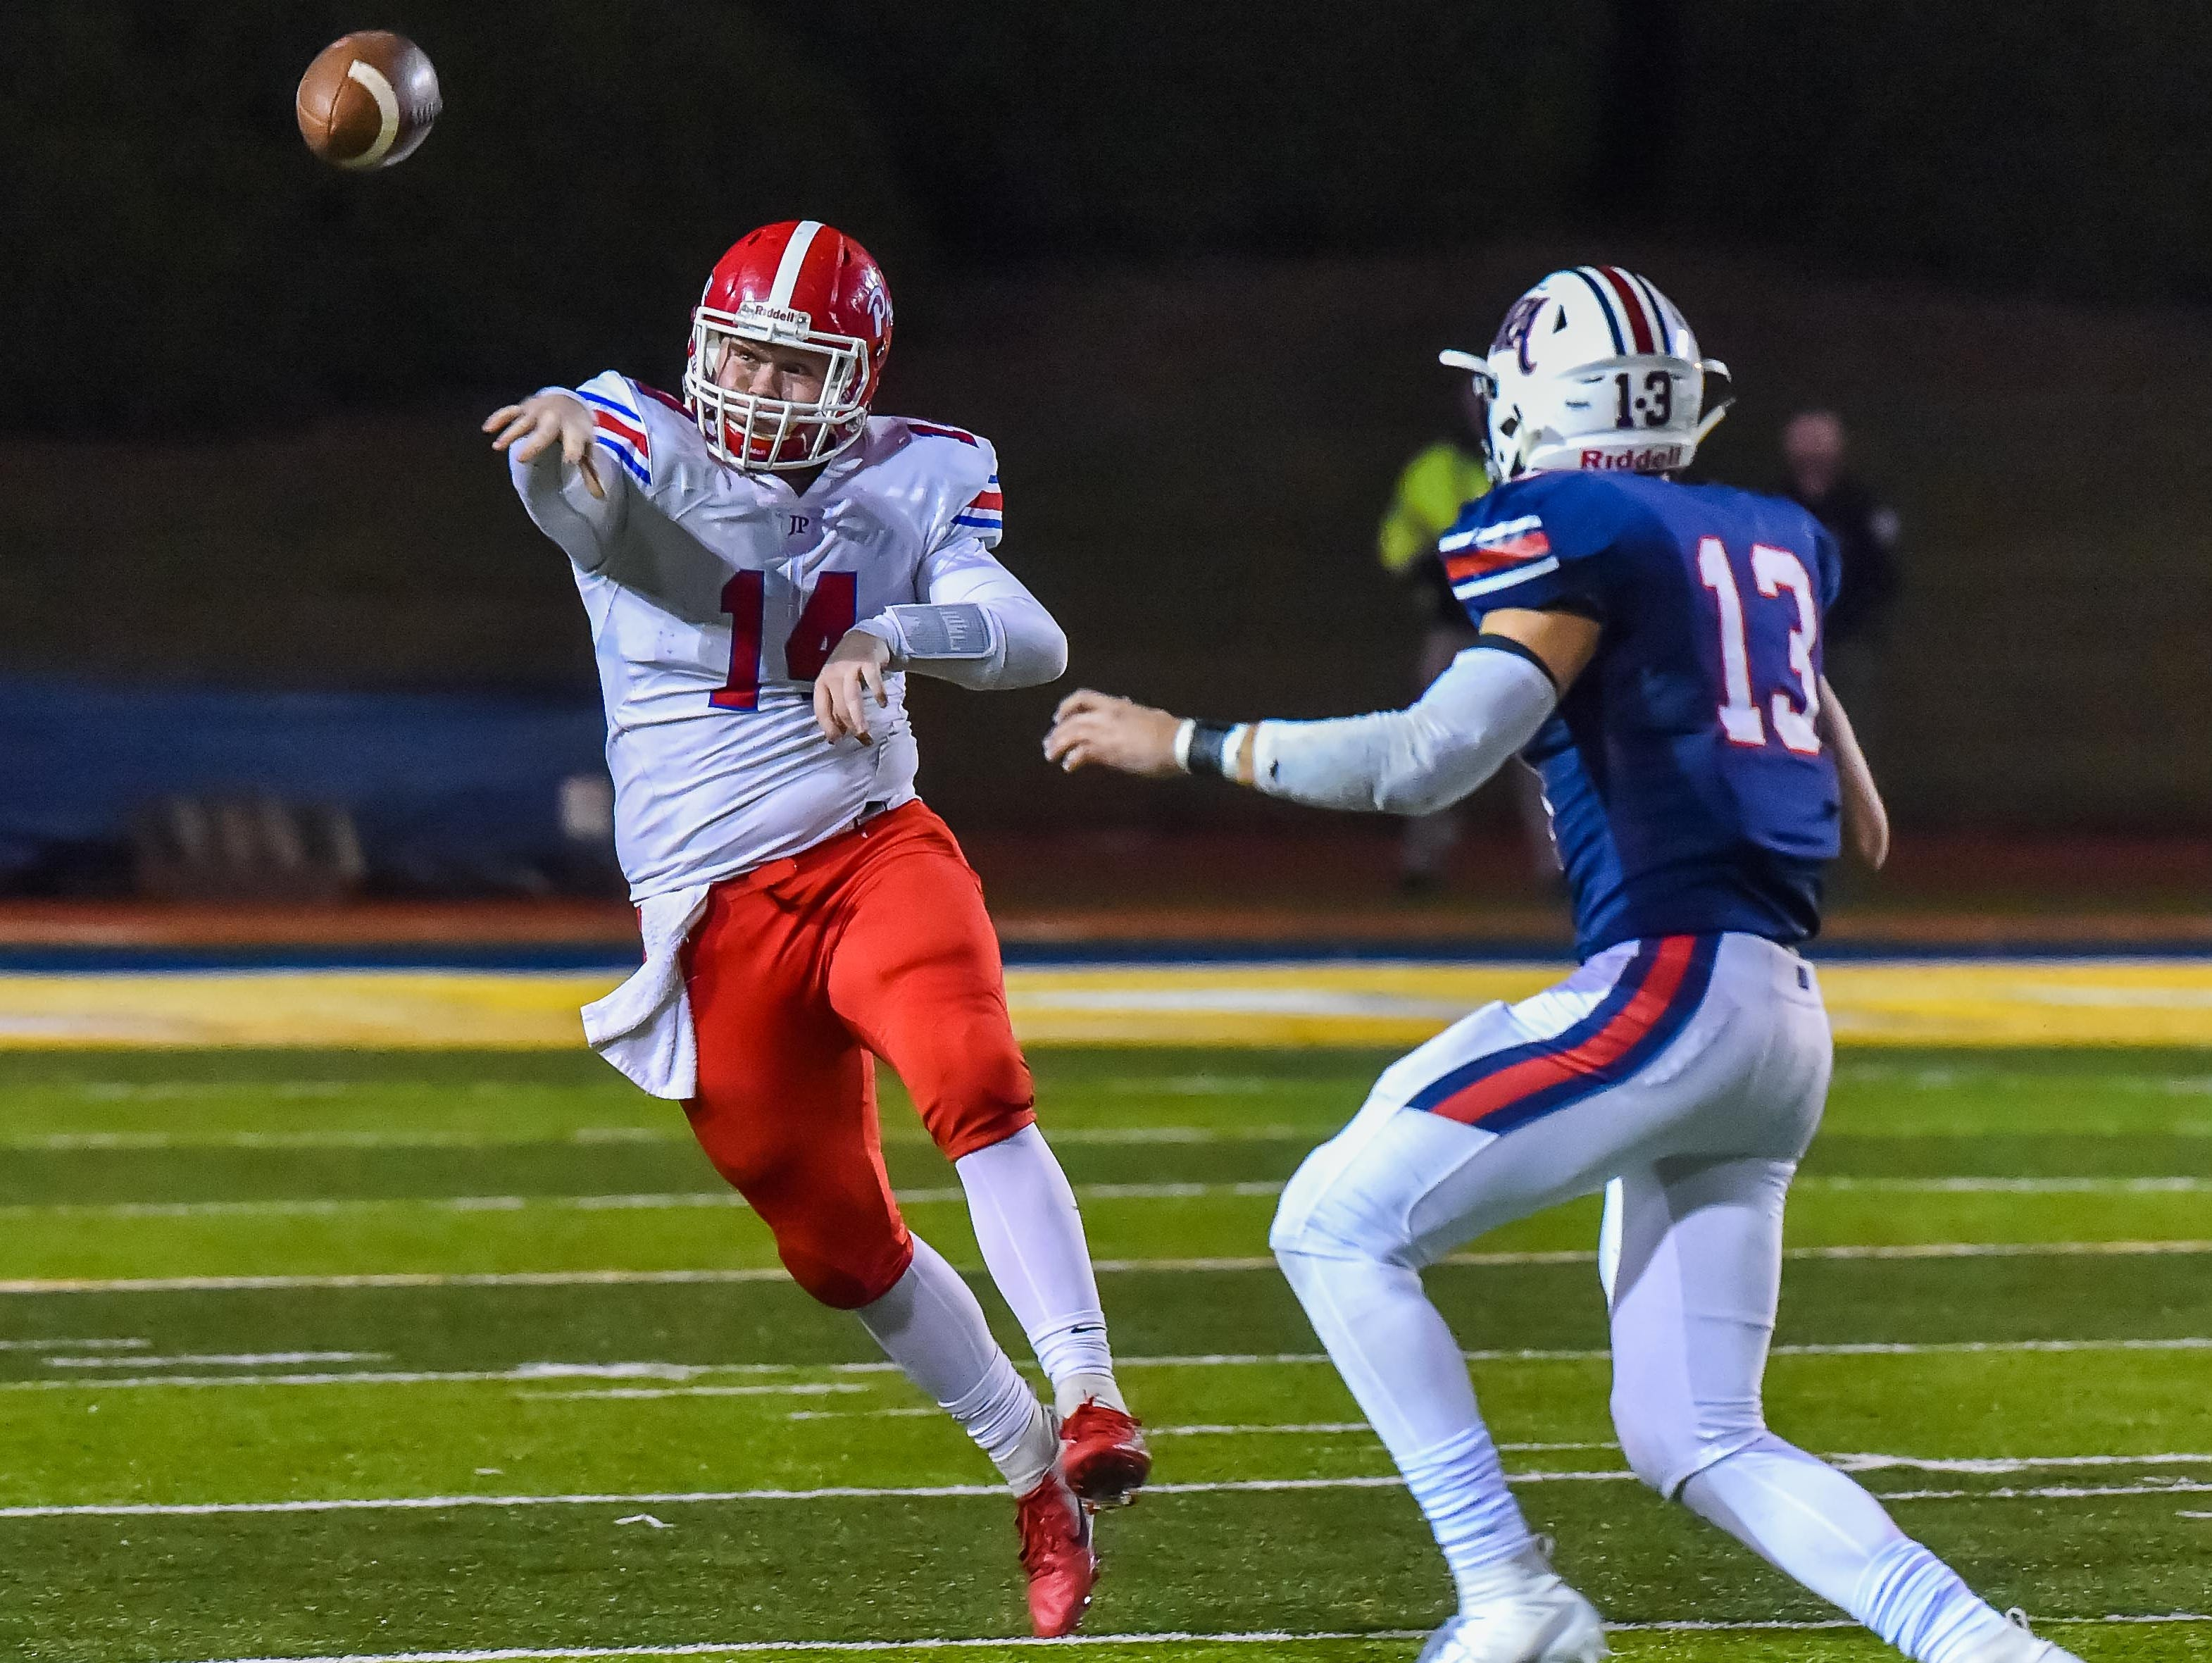 Jackson Prep quarterback Alex Gibbs (14) throws a pass during the MAIS Class AAAA Championship Football game held at Jackson Academy in Jackson, MS, Thursday November 16, 2018.(Bob Smith-For The Clarion Ledger)